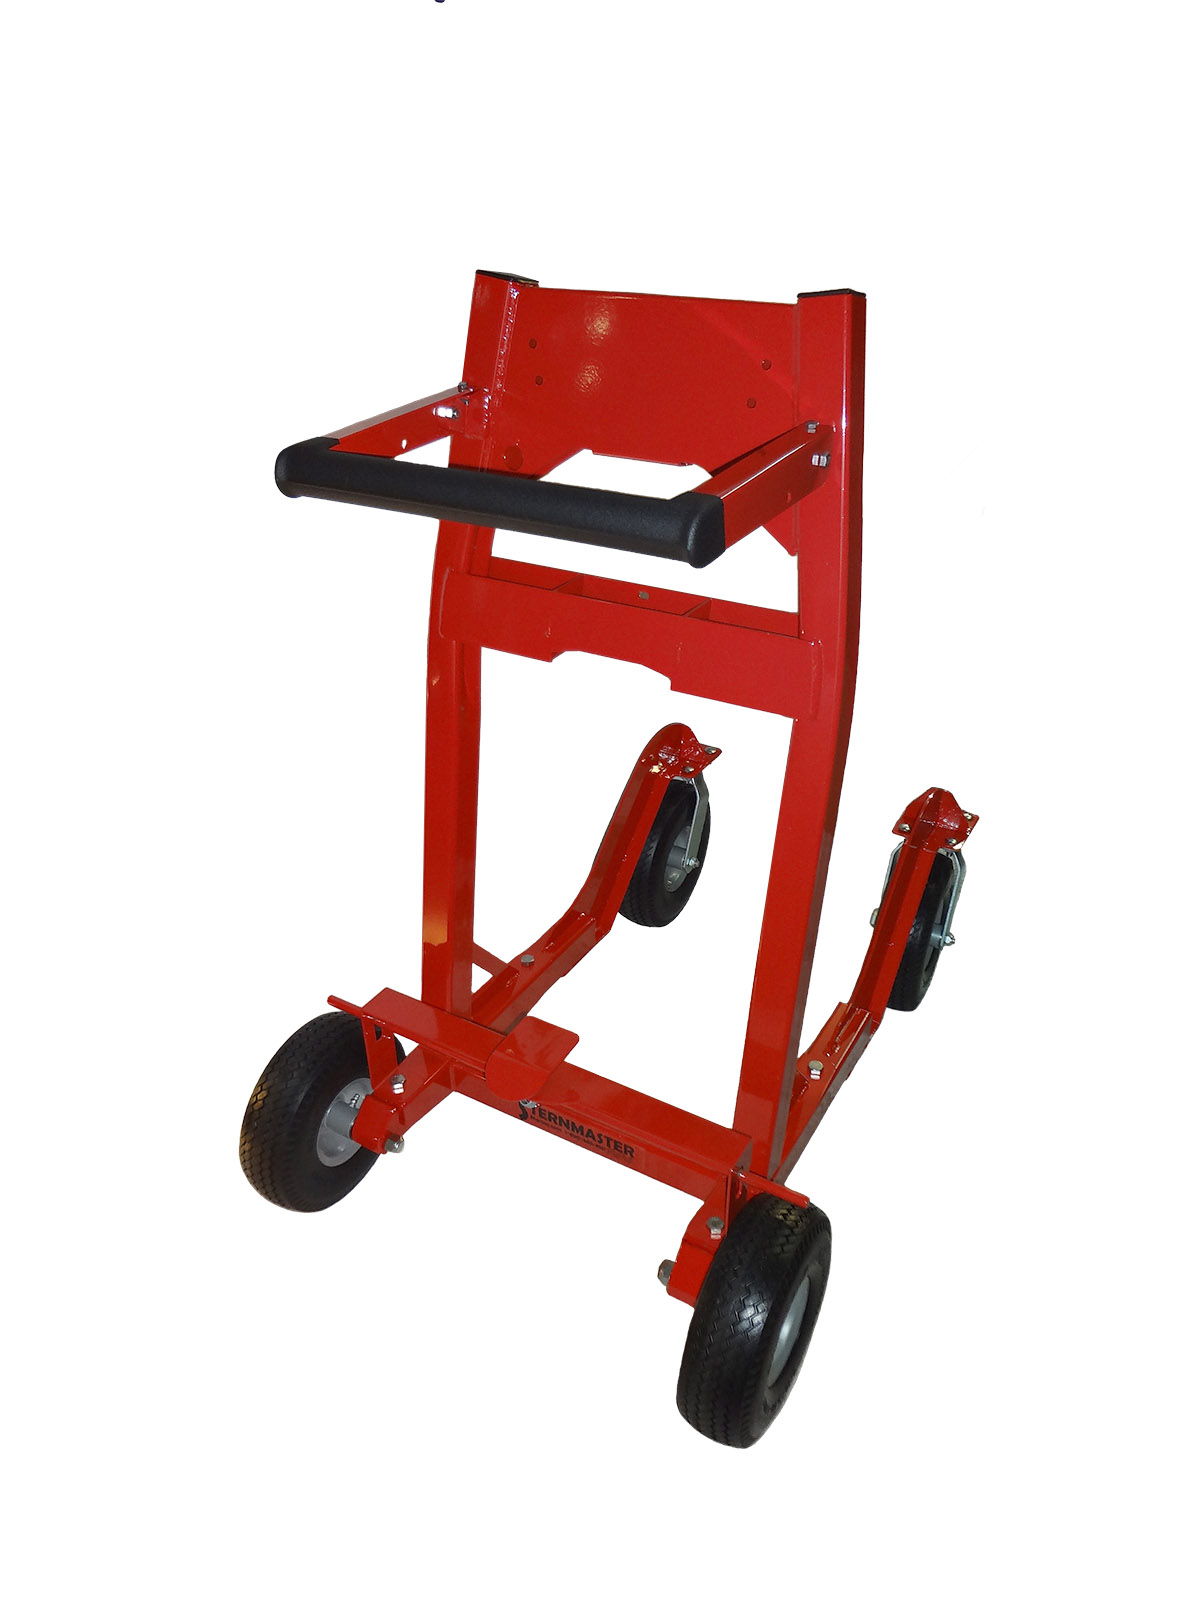 All Terrain Outboard Motor Dolly